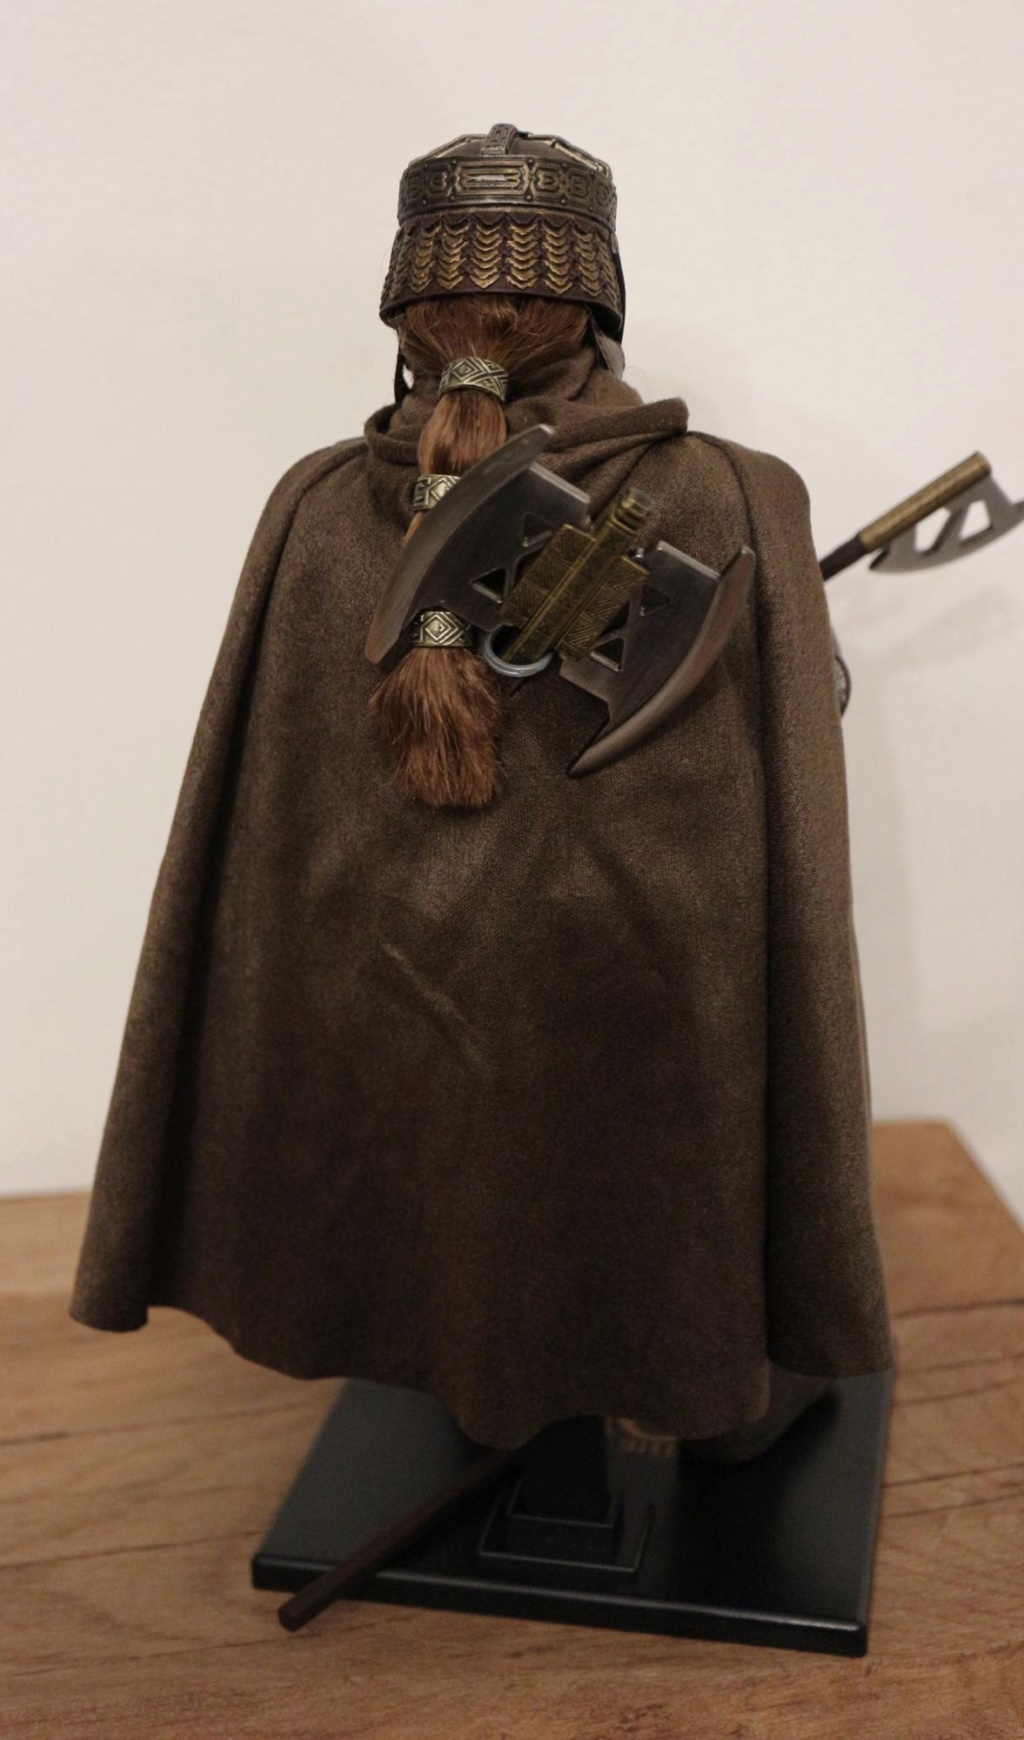 NEW PRODUCT: Asmus Toys The Lord of the Rings Series: Gimli (LOTR018) Timeme16